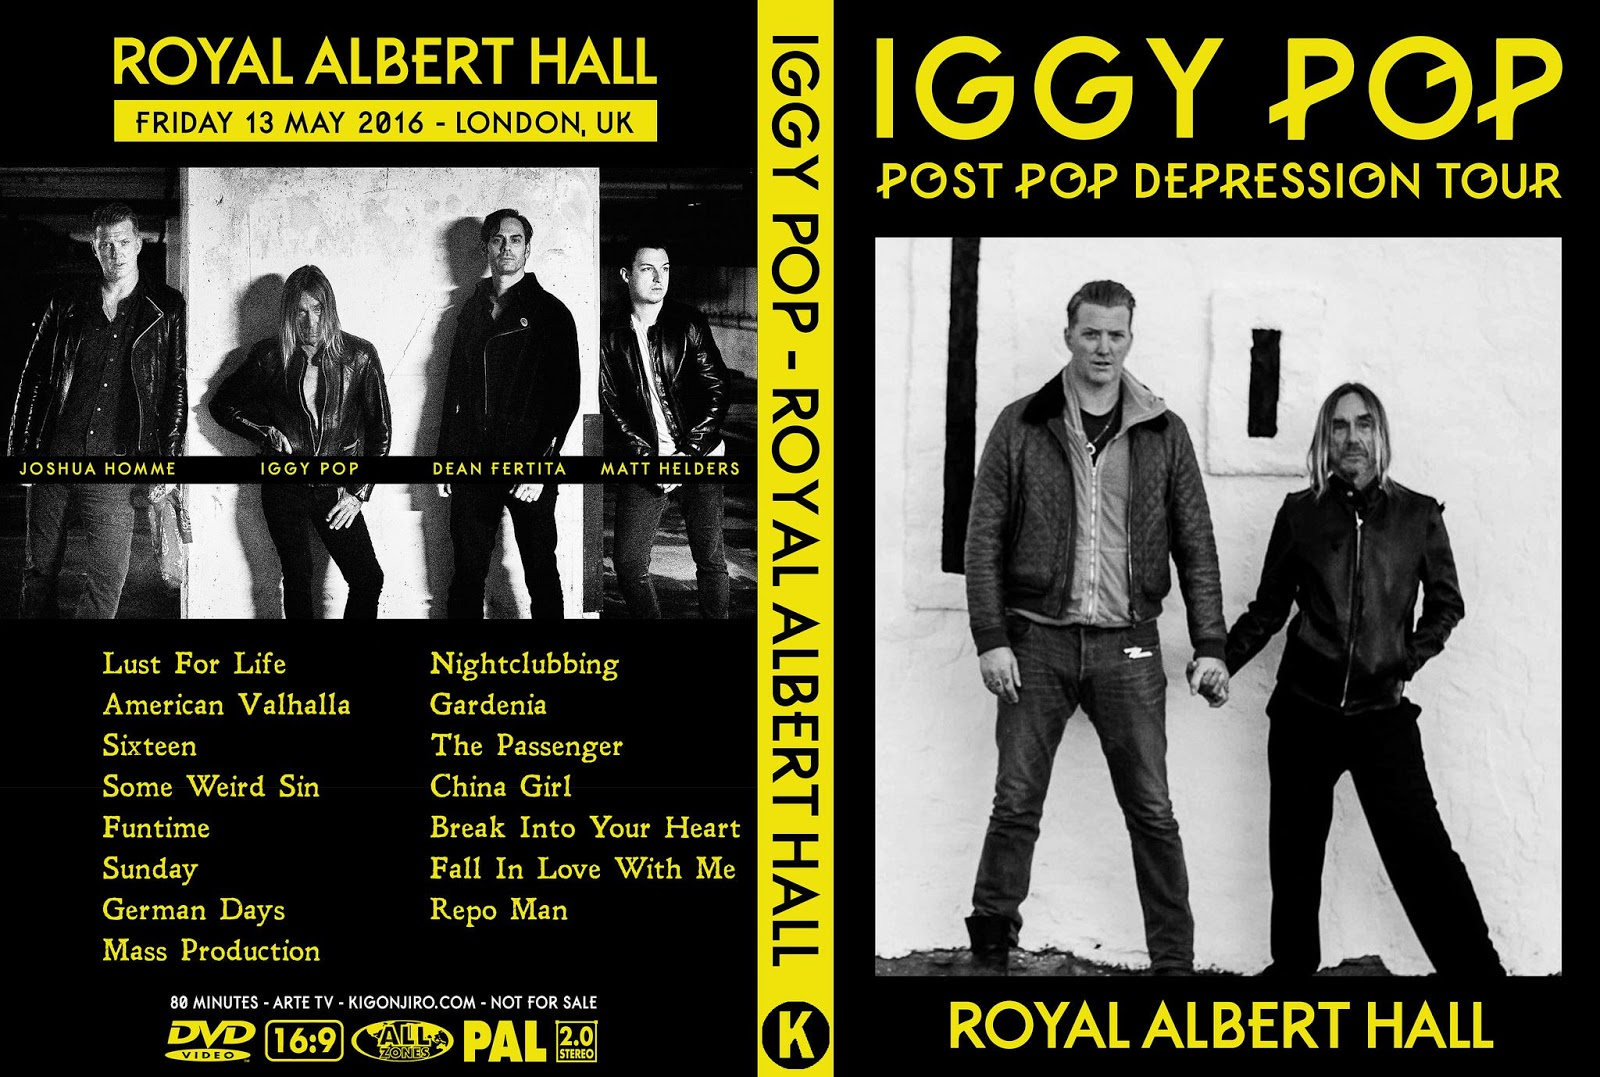 Iggy Pop Album Covers Simple peter c's music tv & video archives: iggy pop / the stooges on dvd